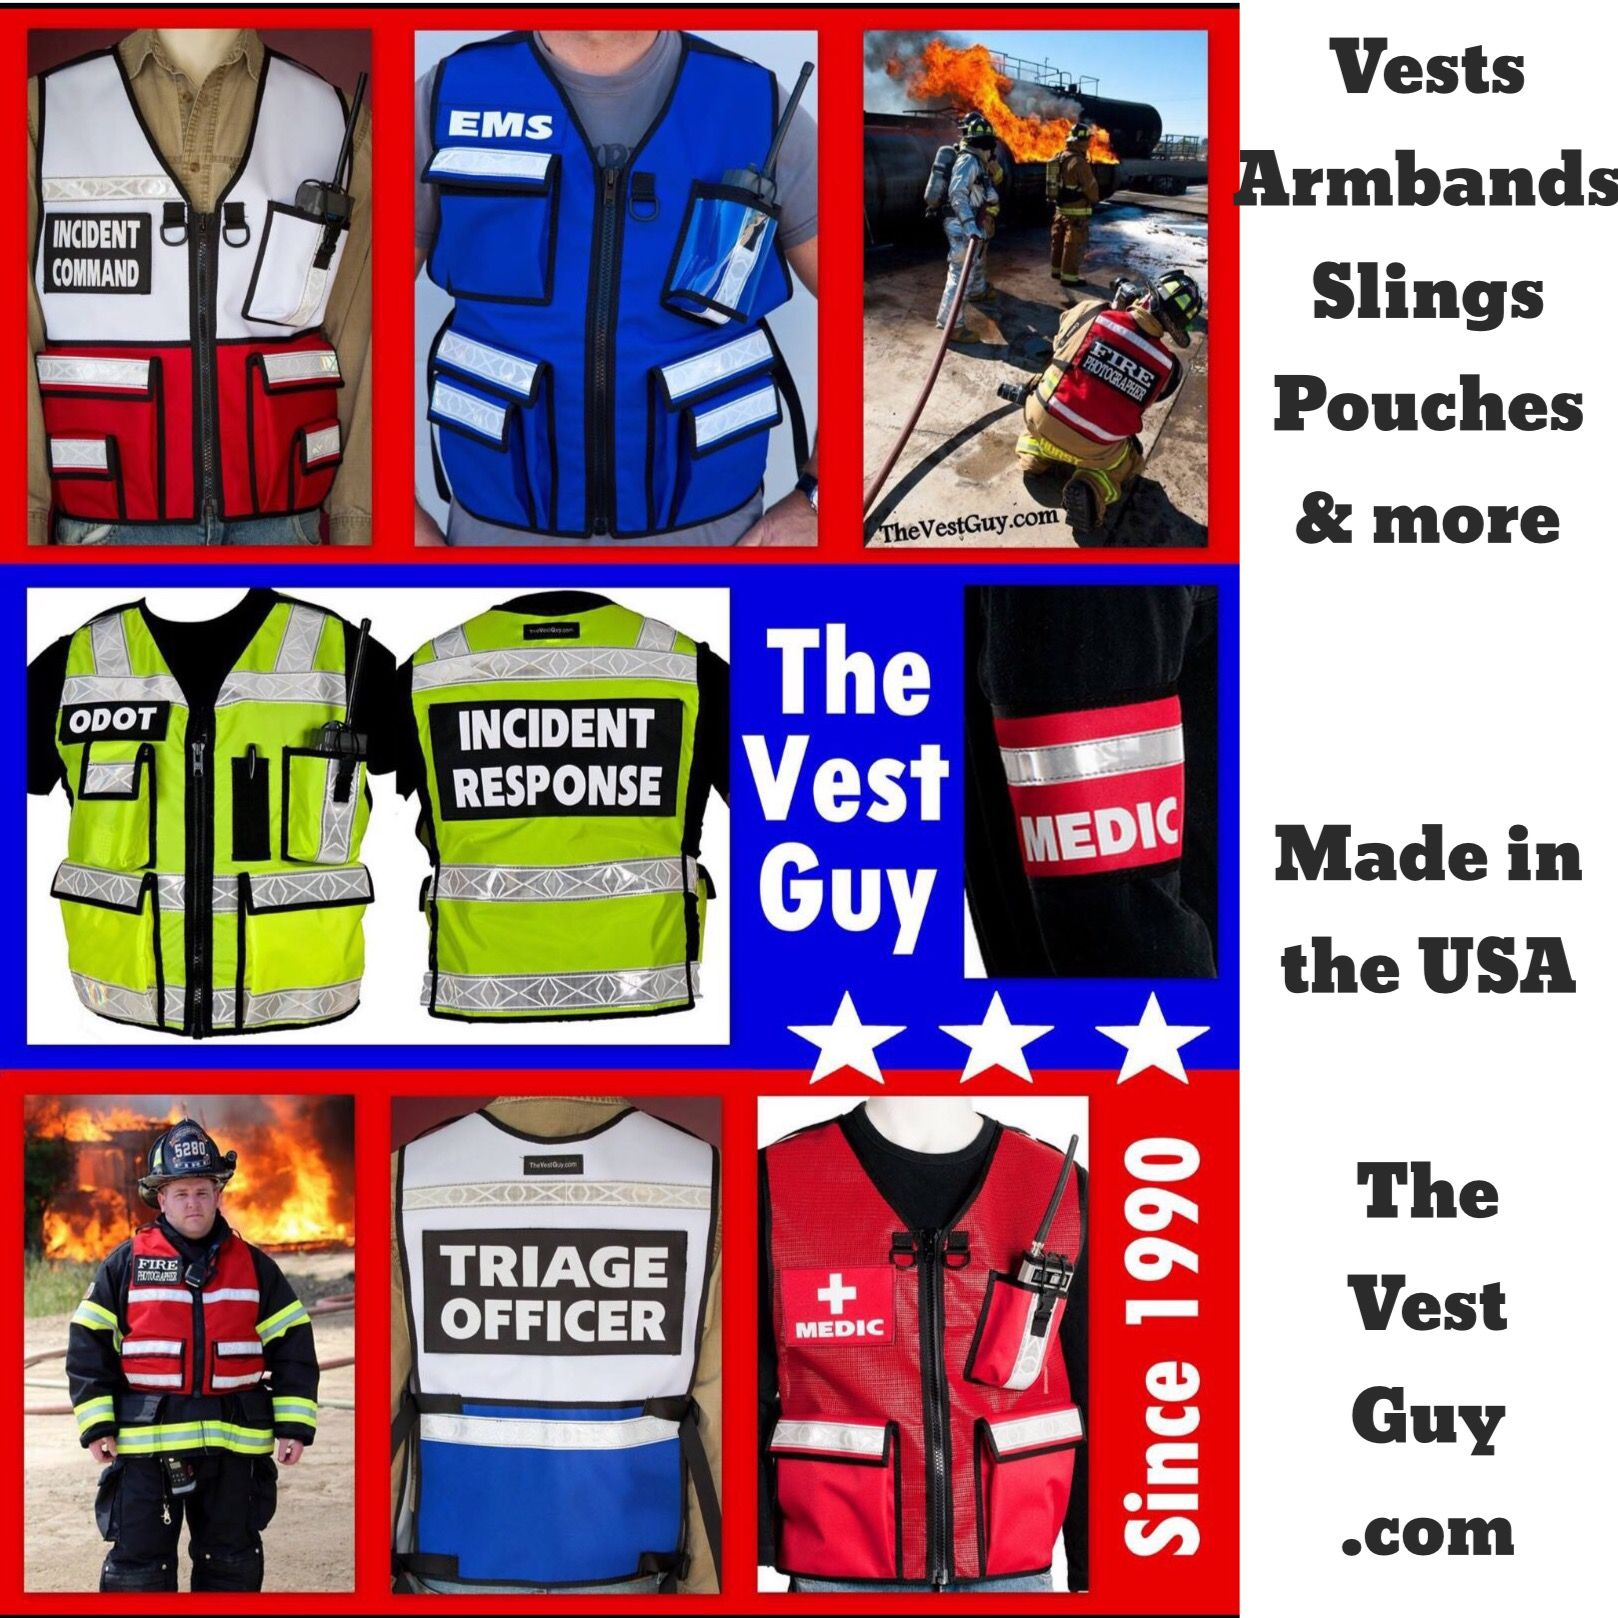 Custom vests, armbands, slings, pouches, & more. From